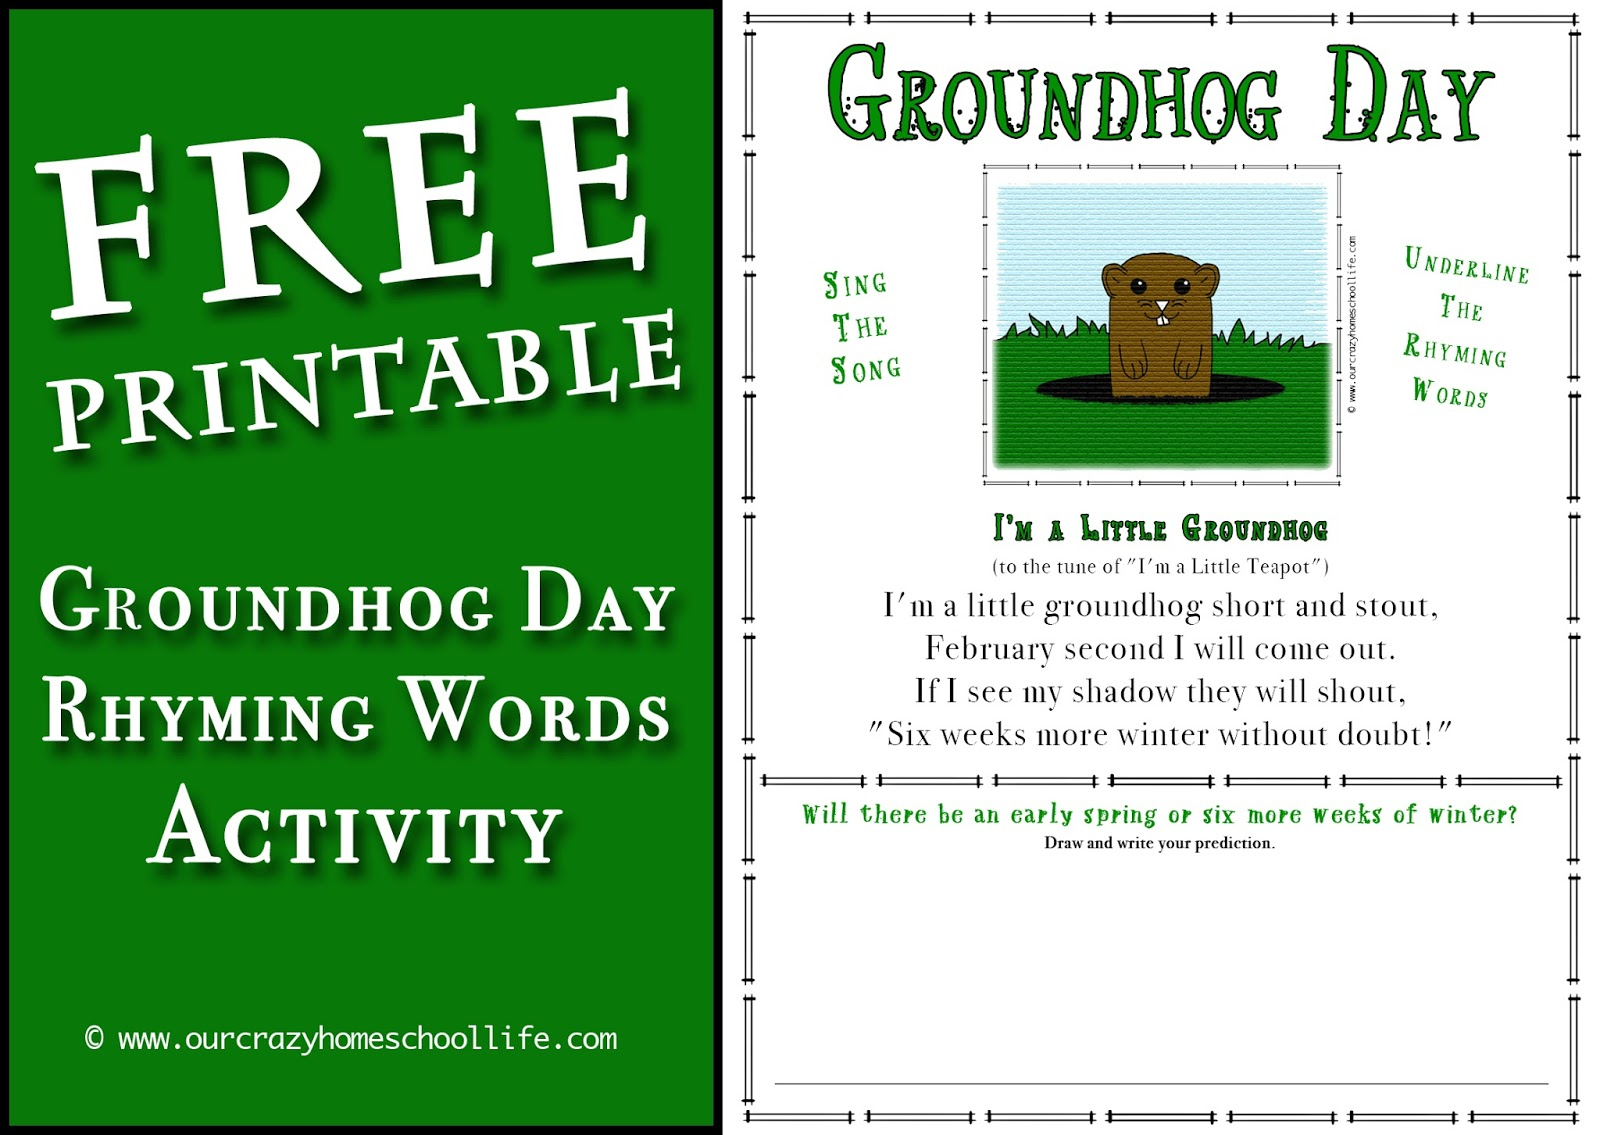 Free Groundhog Day Rhyming Words Activity